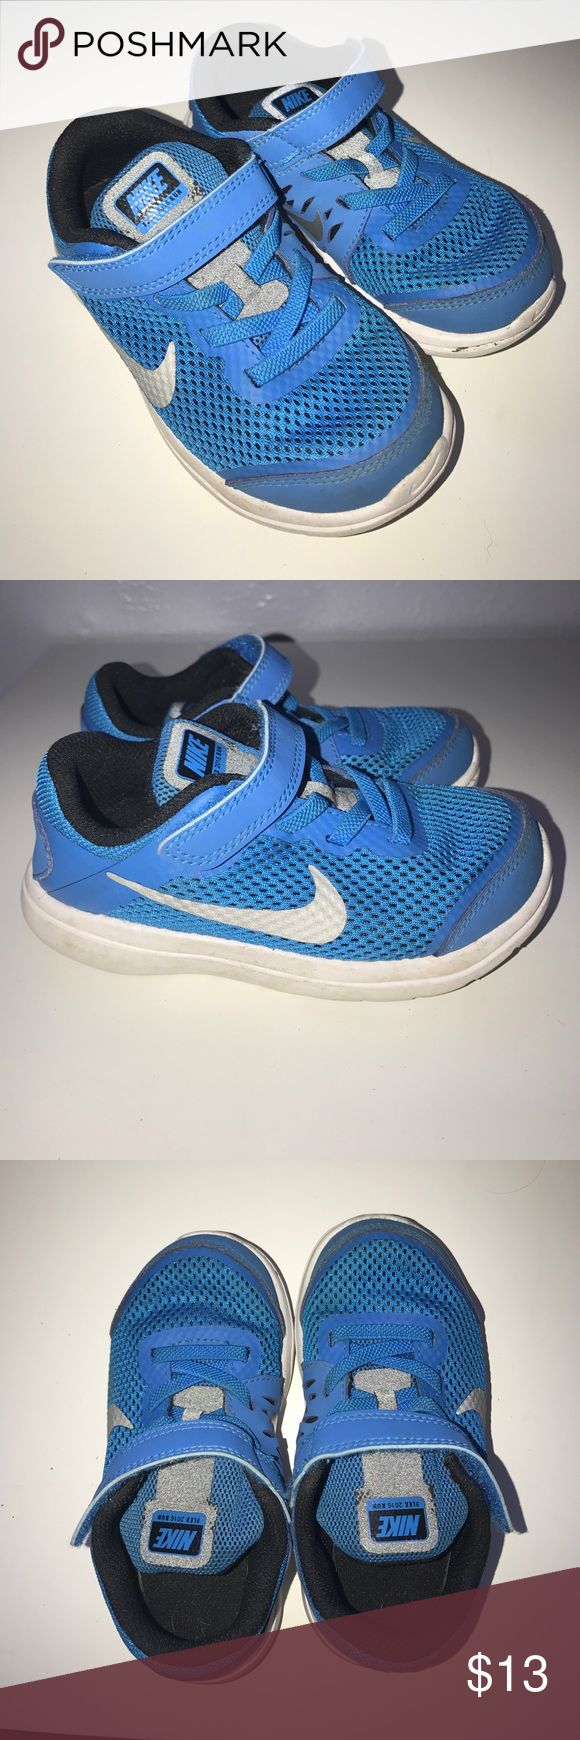 Nike Flex Run Nice kids shies very flexible for the little ones Nike Shoes Sneakers